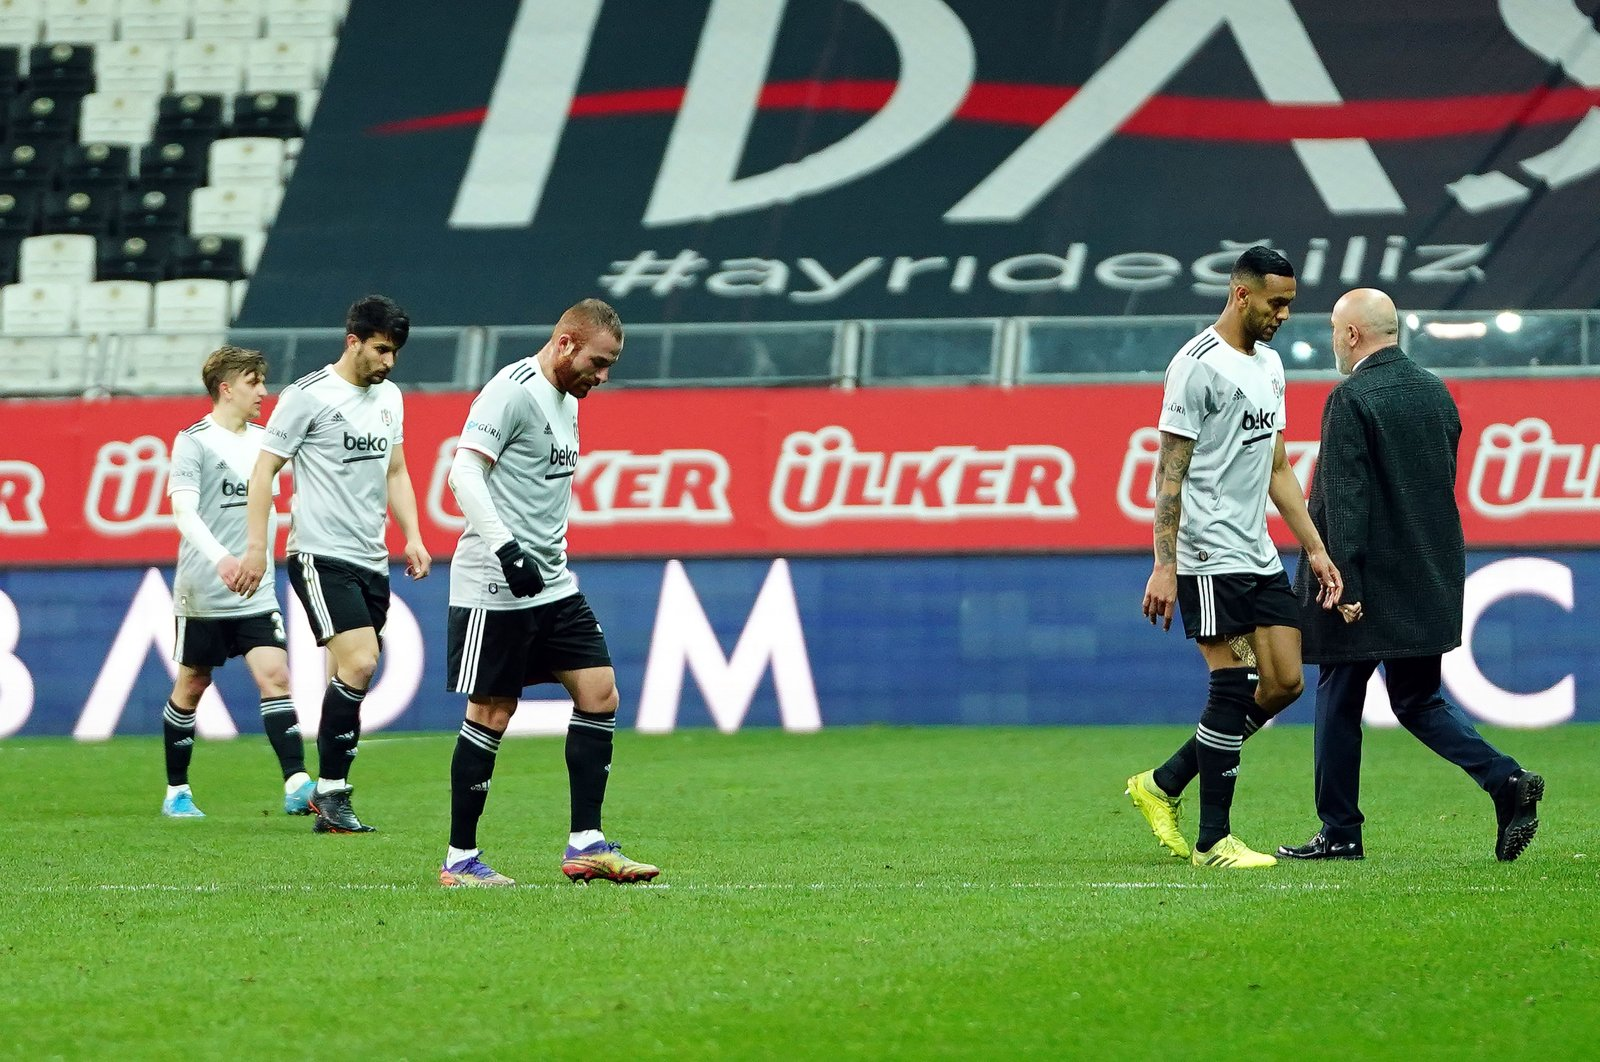 Beşiktaş players look dejected after playing out a draw against Ankaragücü in the Süper Lig, Istanbul, Turkey, April 19, 2021. (IHA Photo)